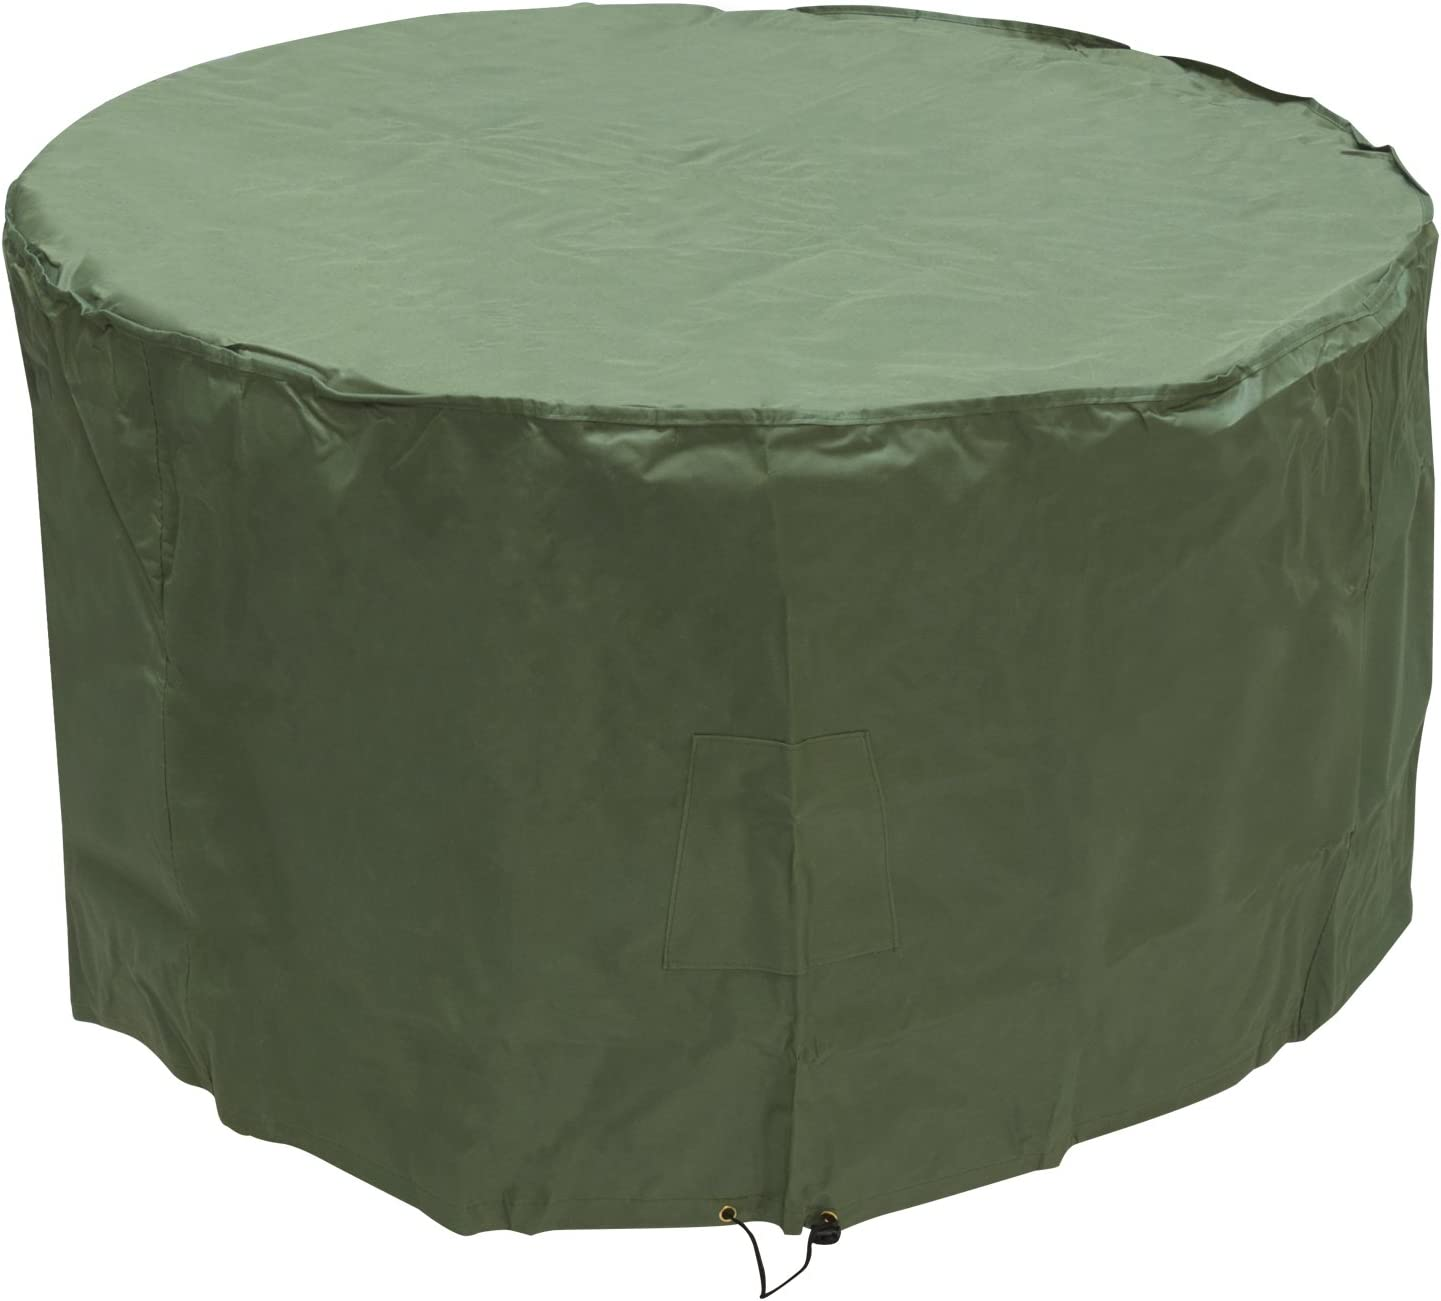 4.7ft x 3.2ft Small Round Outdoor Garden Patio Furniture Set Cover 1.42m x 0.96m